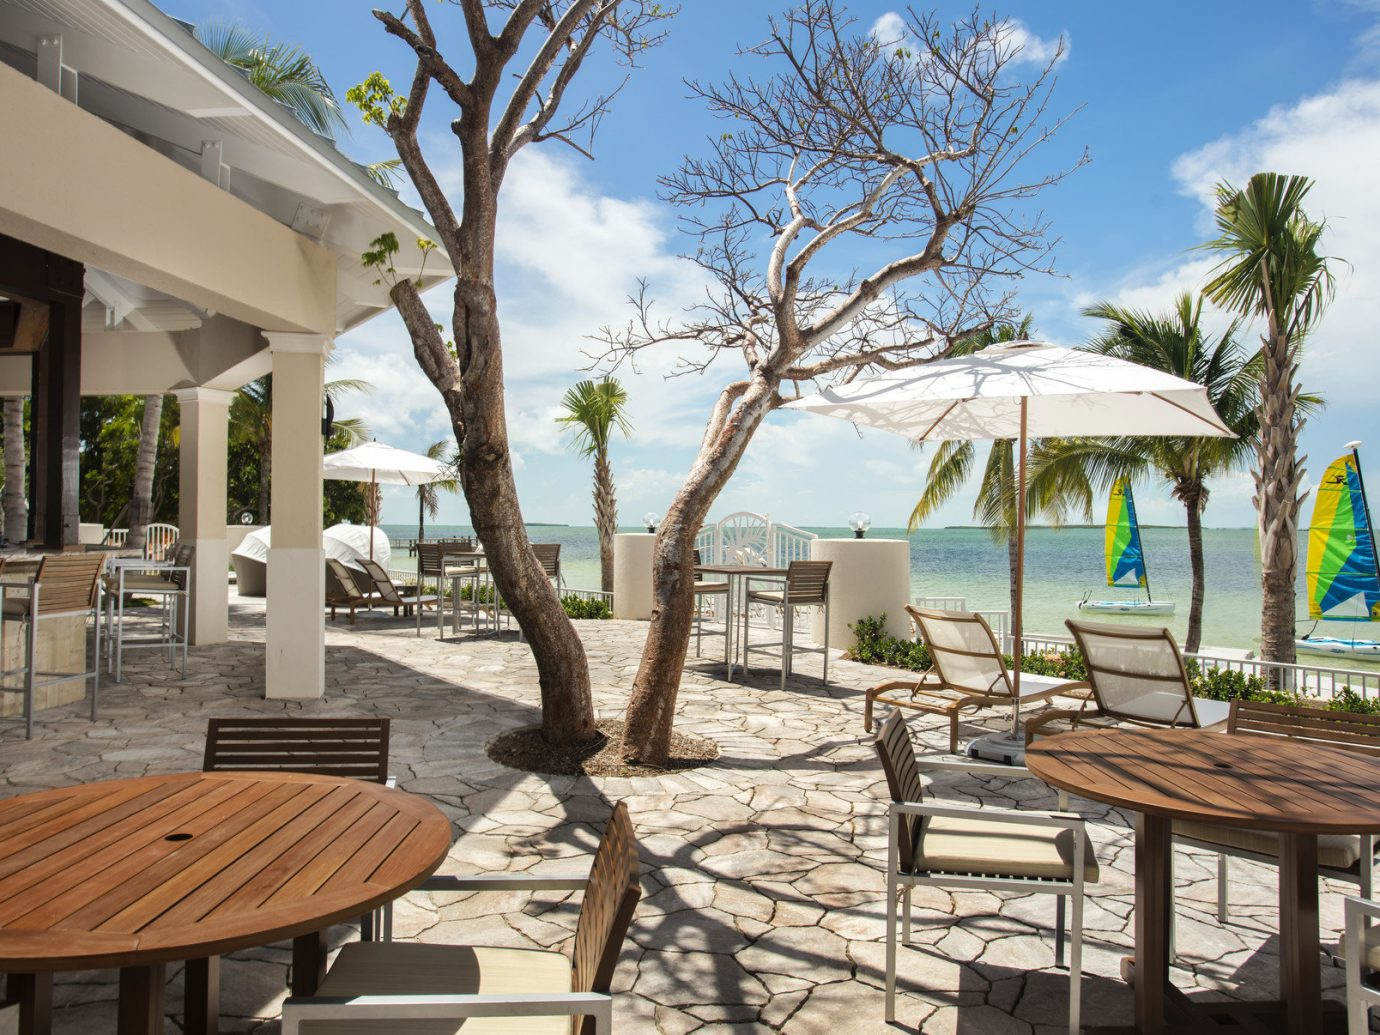 Hotels outdoor tree sky ground chair leisure property Resort estate vacation home real estate Villa Beach caribbean cottage backyard lawn porch Deck shade furniture day